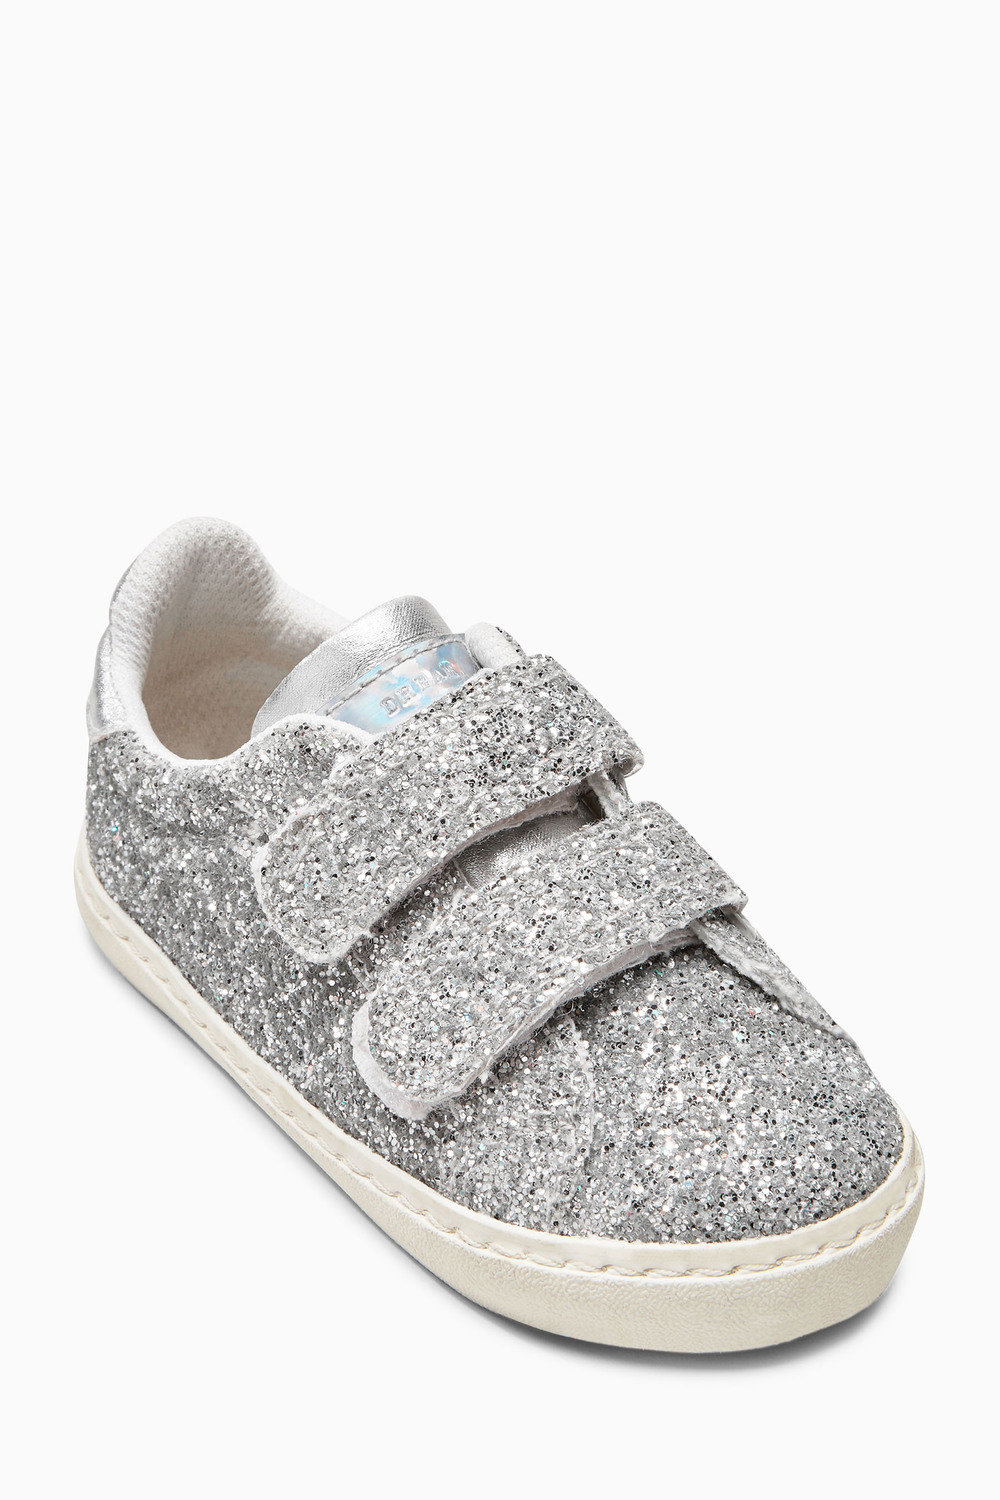 5ed77070f7d Next Silver Glitter Trainers (Younger Girls) Online